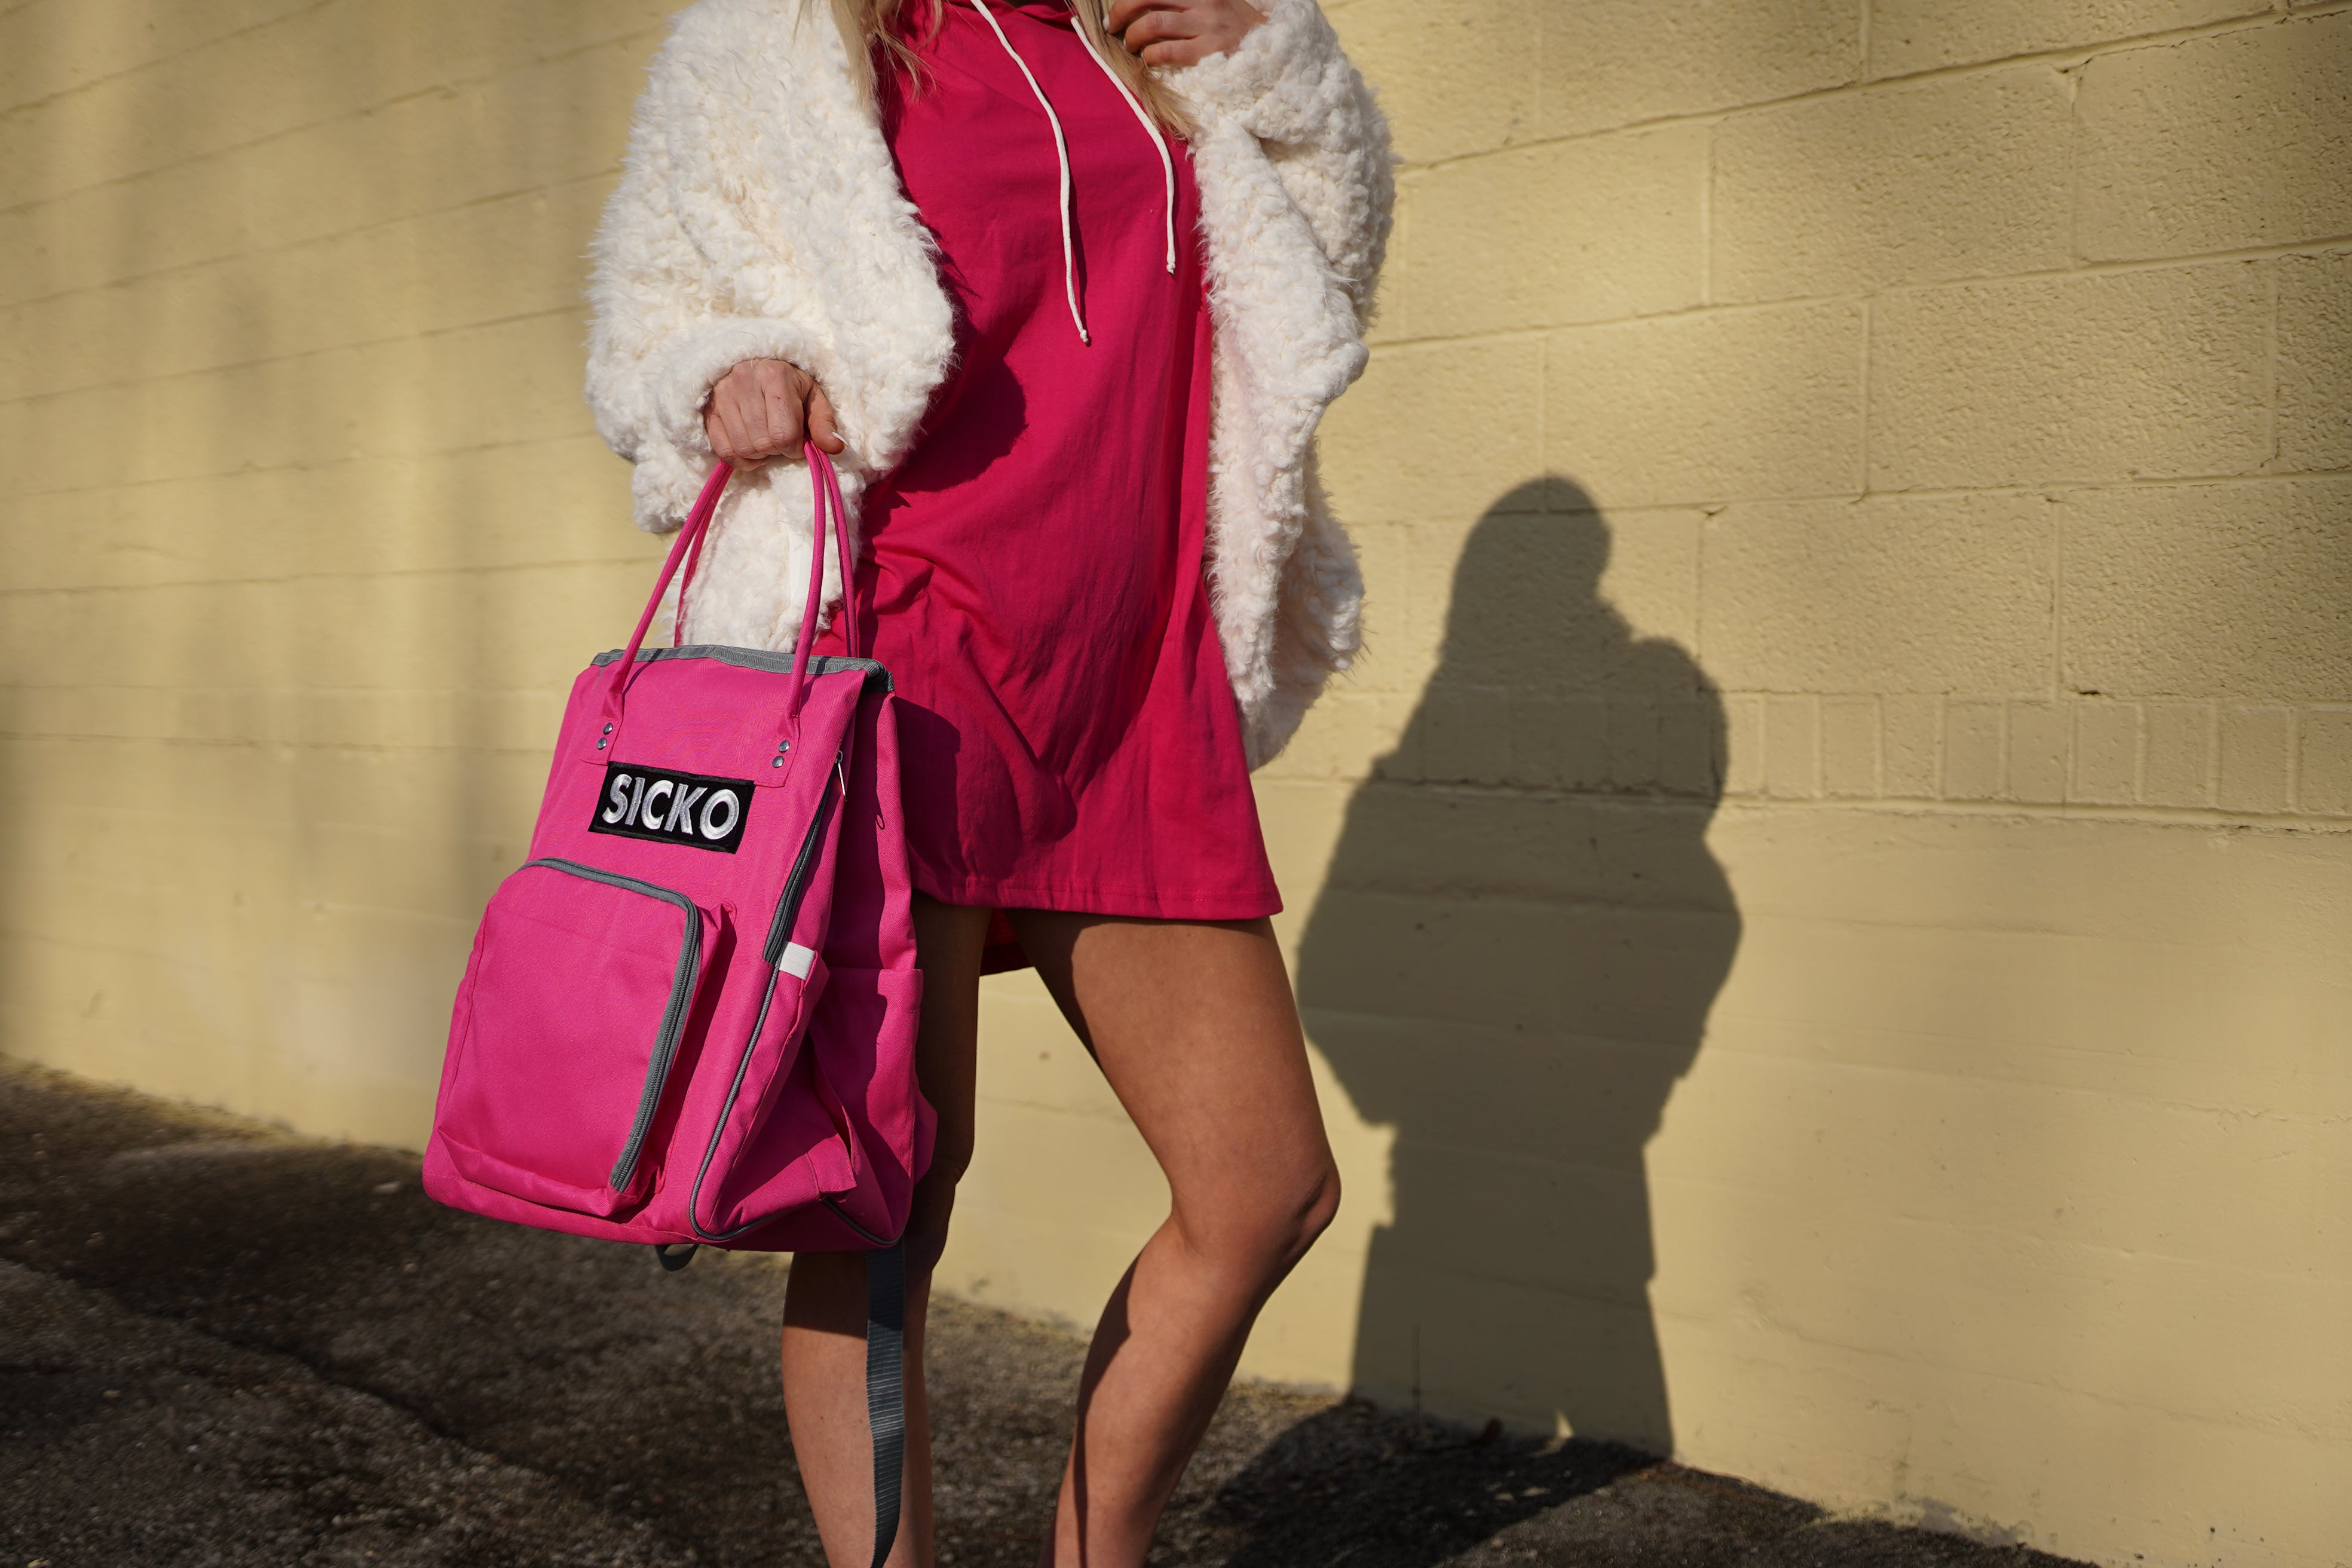 Woman Wearing Red Dress Carrying Pink Bag